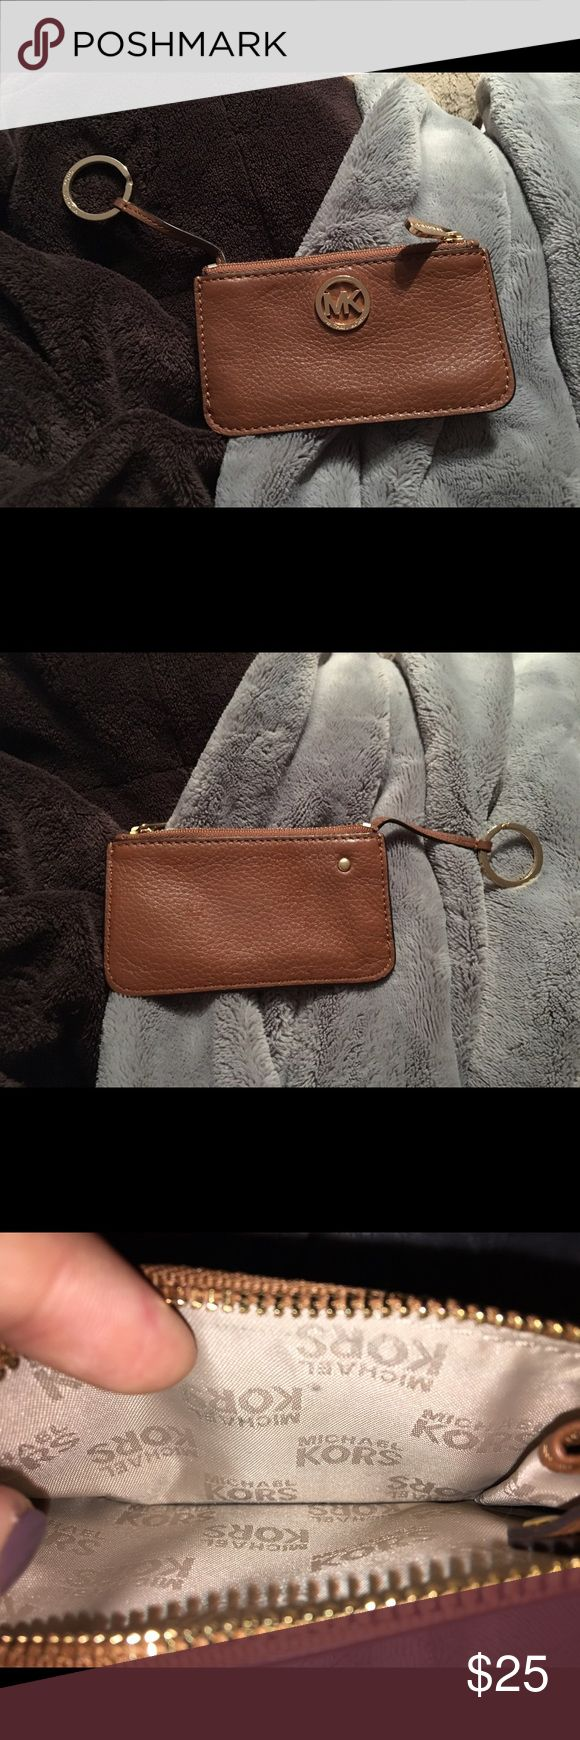 Authentic Michael Kors keychain/coin purse Bought the Michael Kors store. Barely used. Michael Kors Bags Wallets